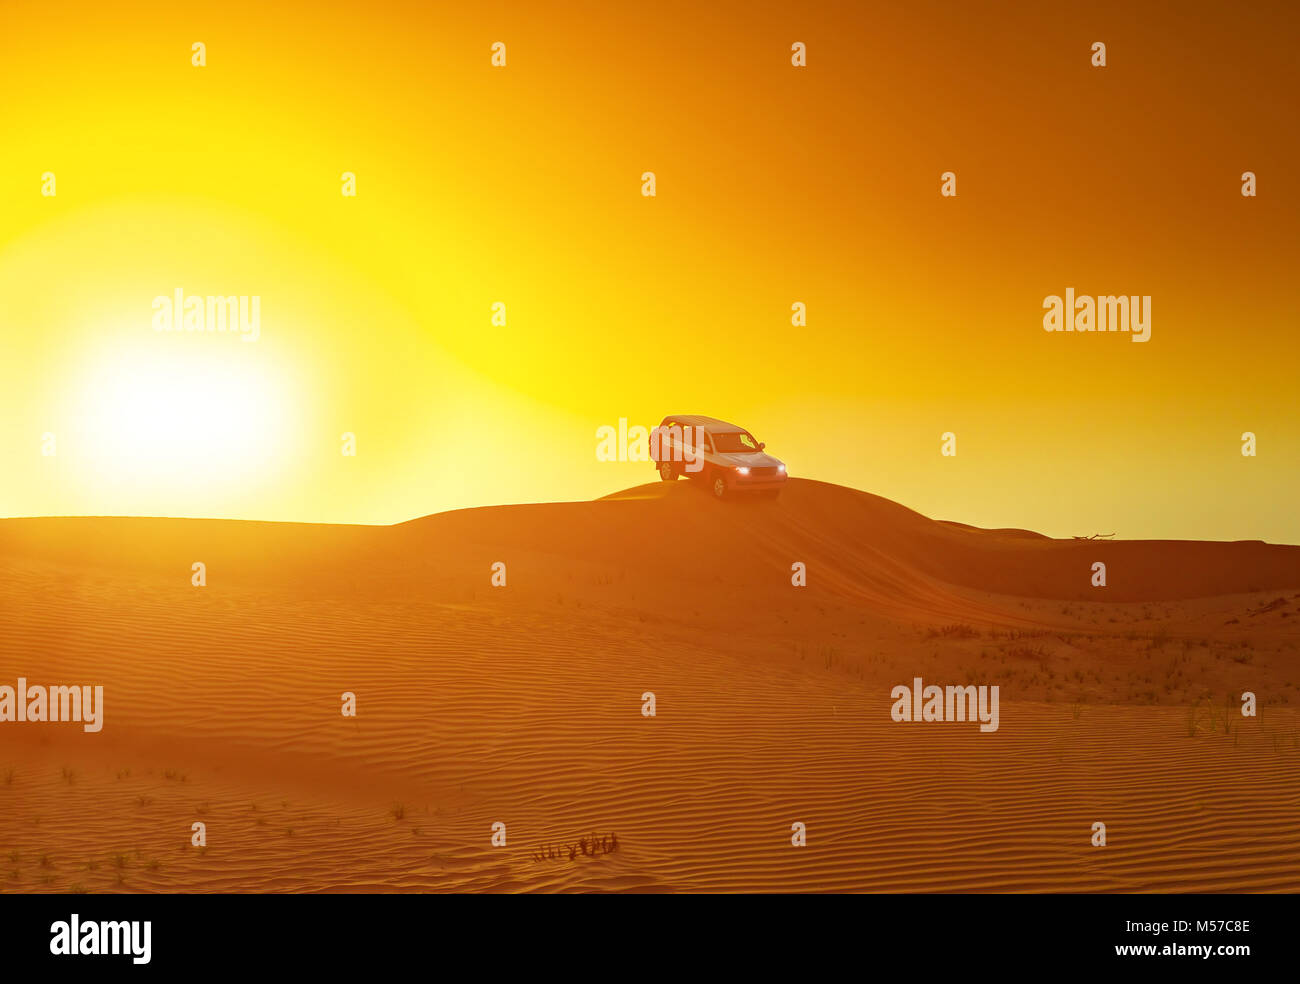 Offroad truck or suv riding dune in arabian desert at sunset. Offroad has been modified to be unrecognized. - Stock Image